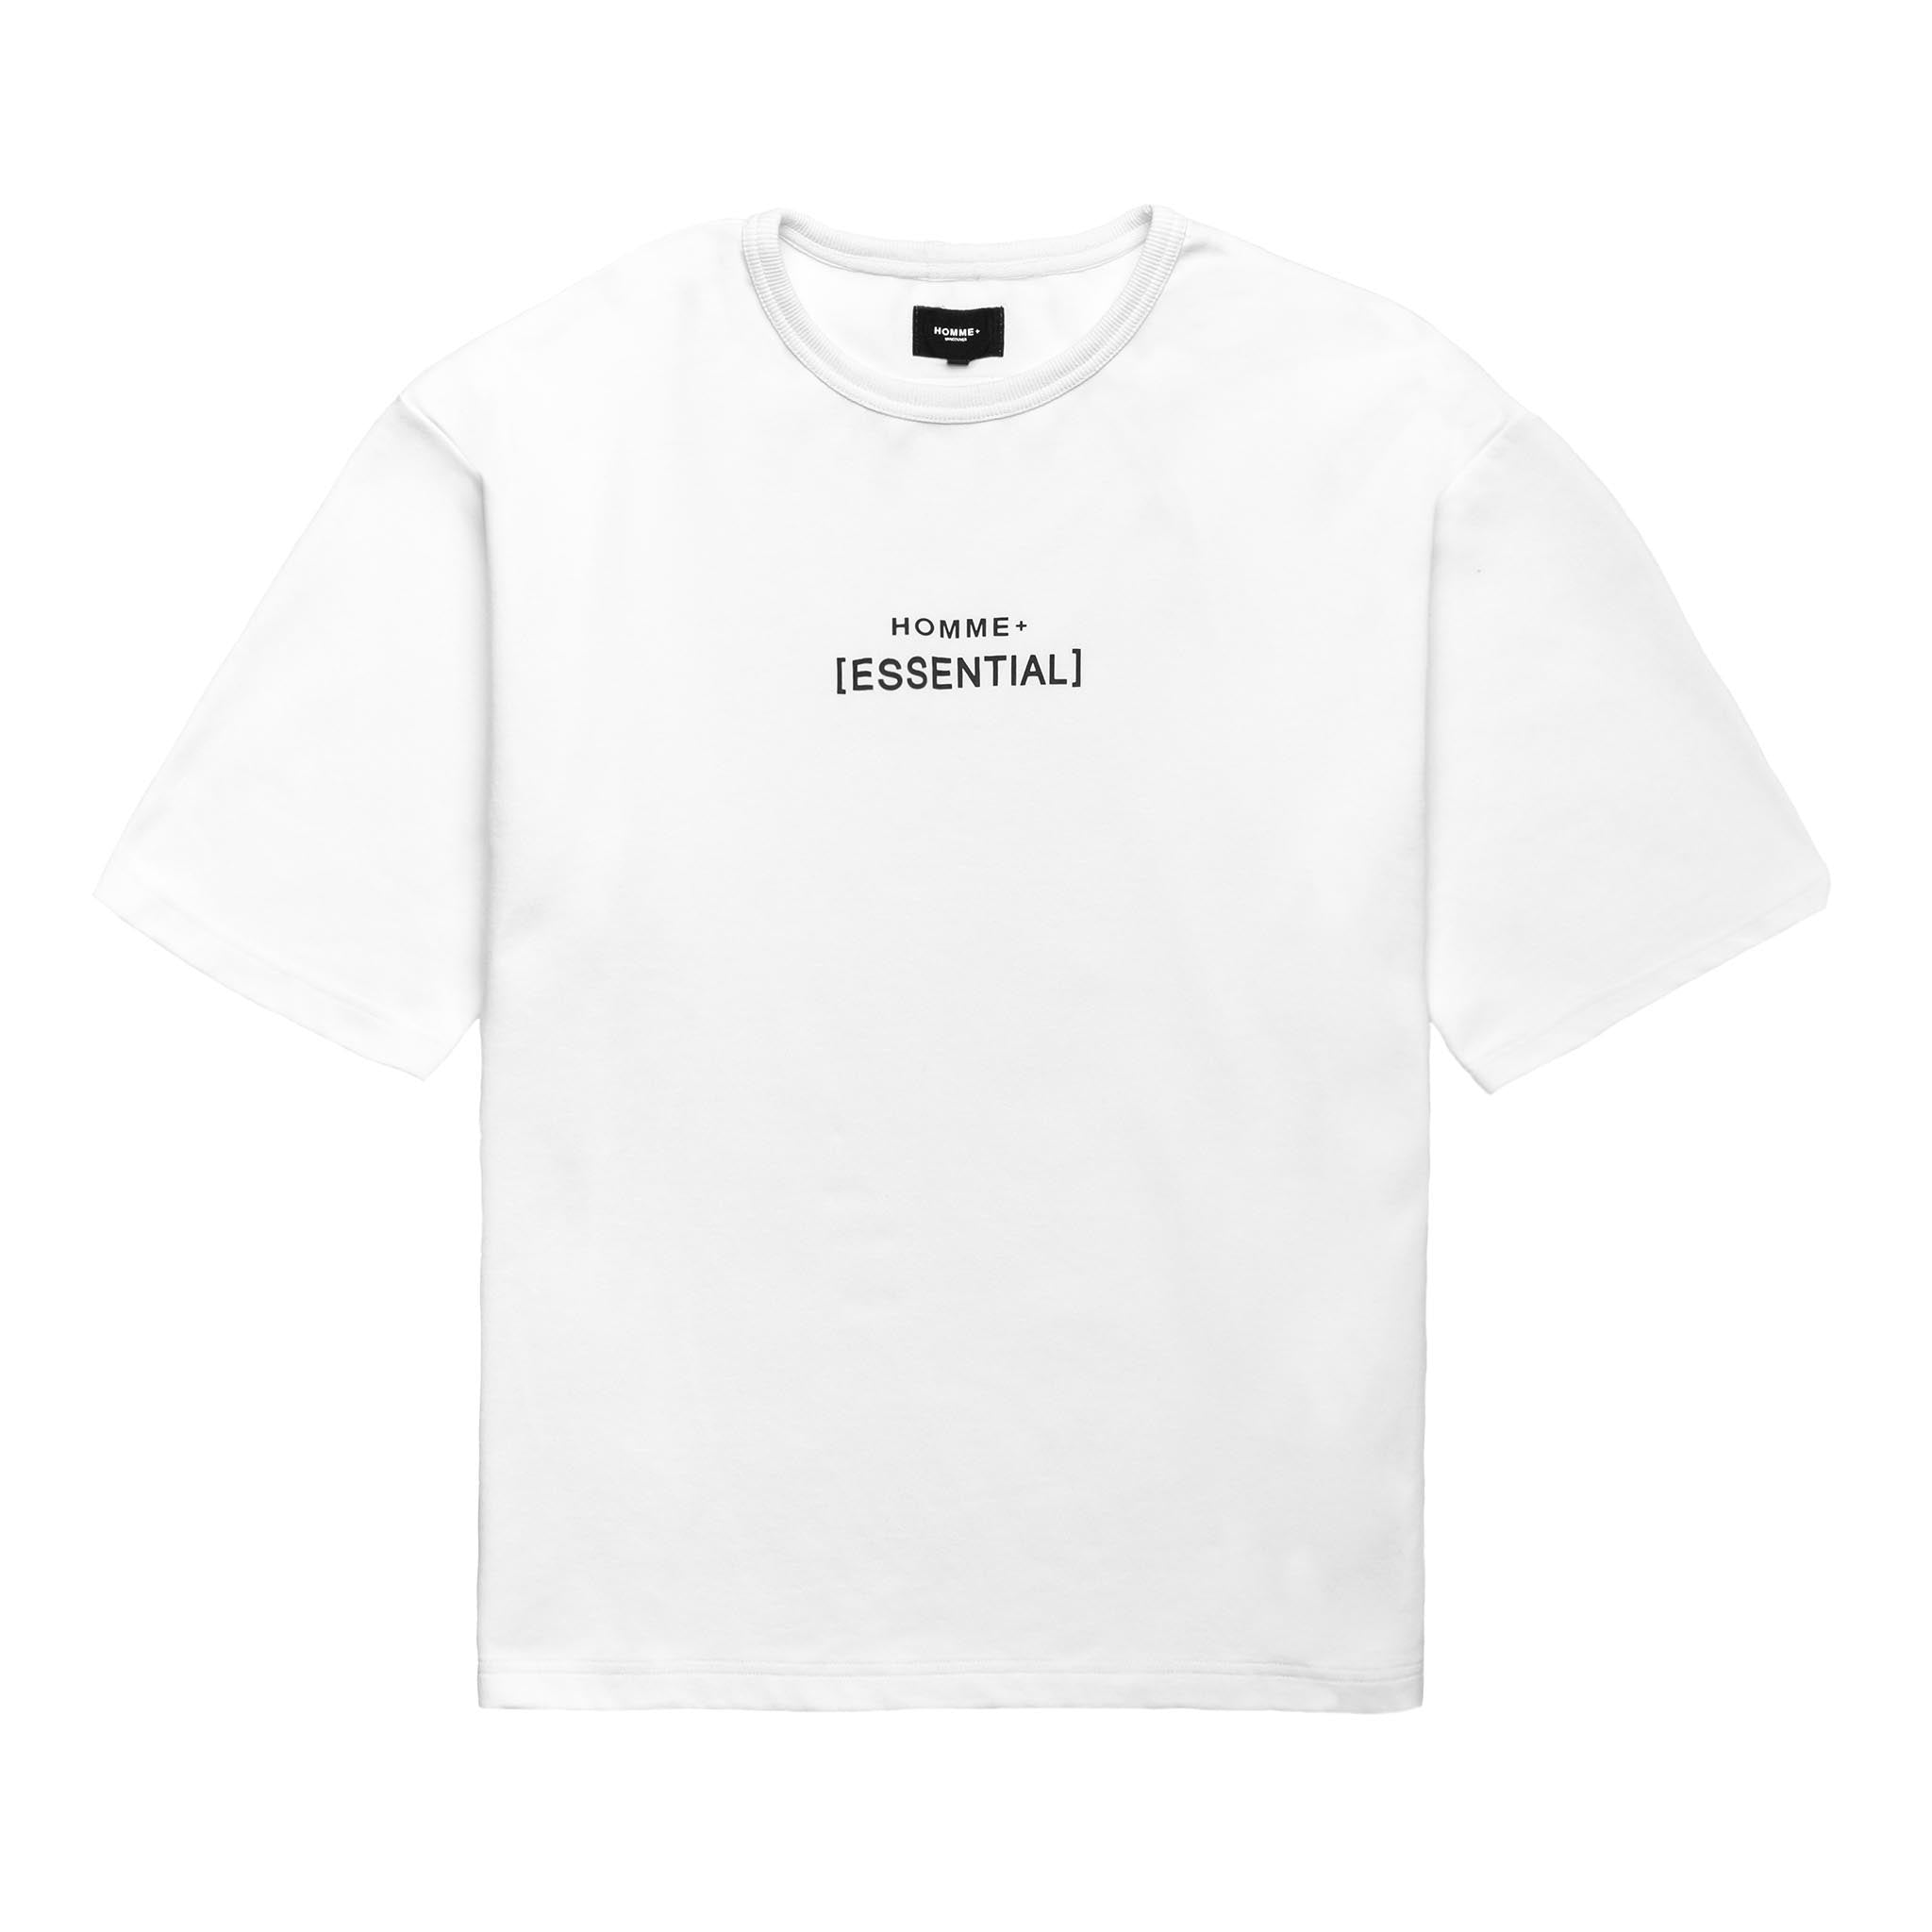 HOMME+ 'ESSENTIAL' Heavyweight Boxy Tee White